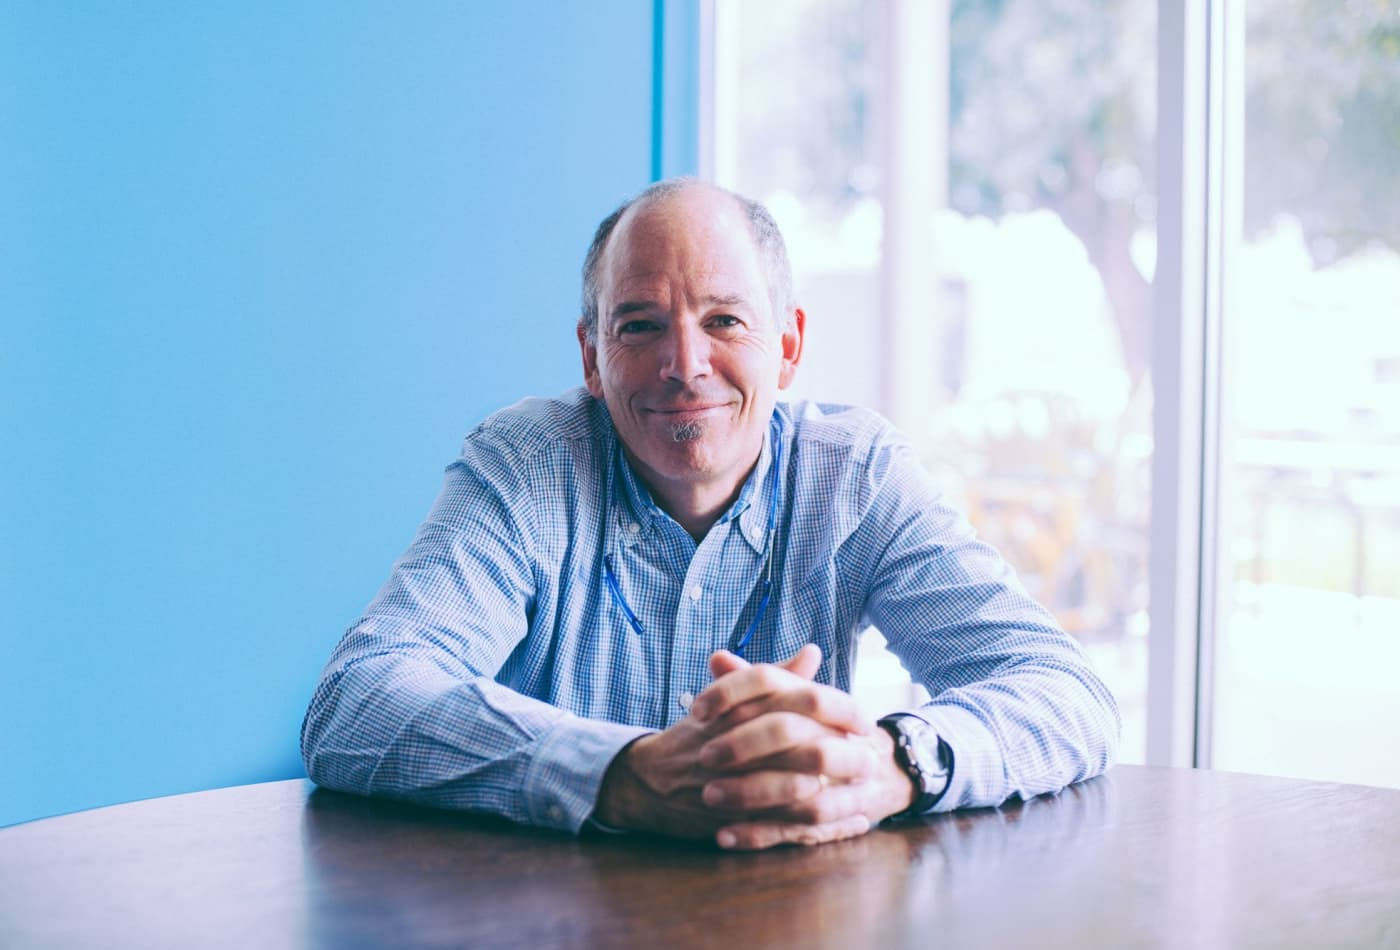 Netflix co-founder Marc Randolph shares the 8 'rules for success' his dad gave him when he was 21